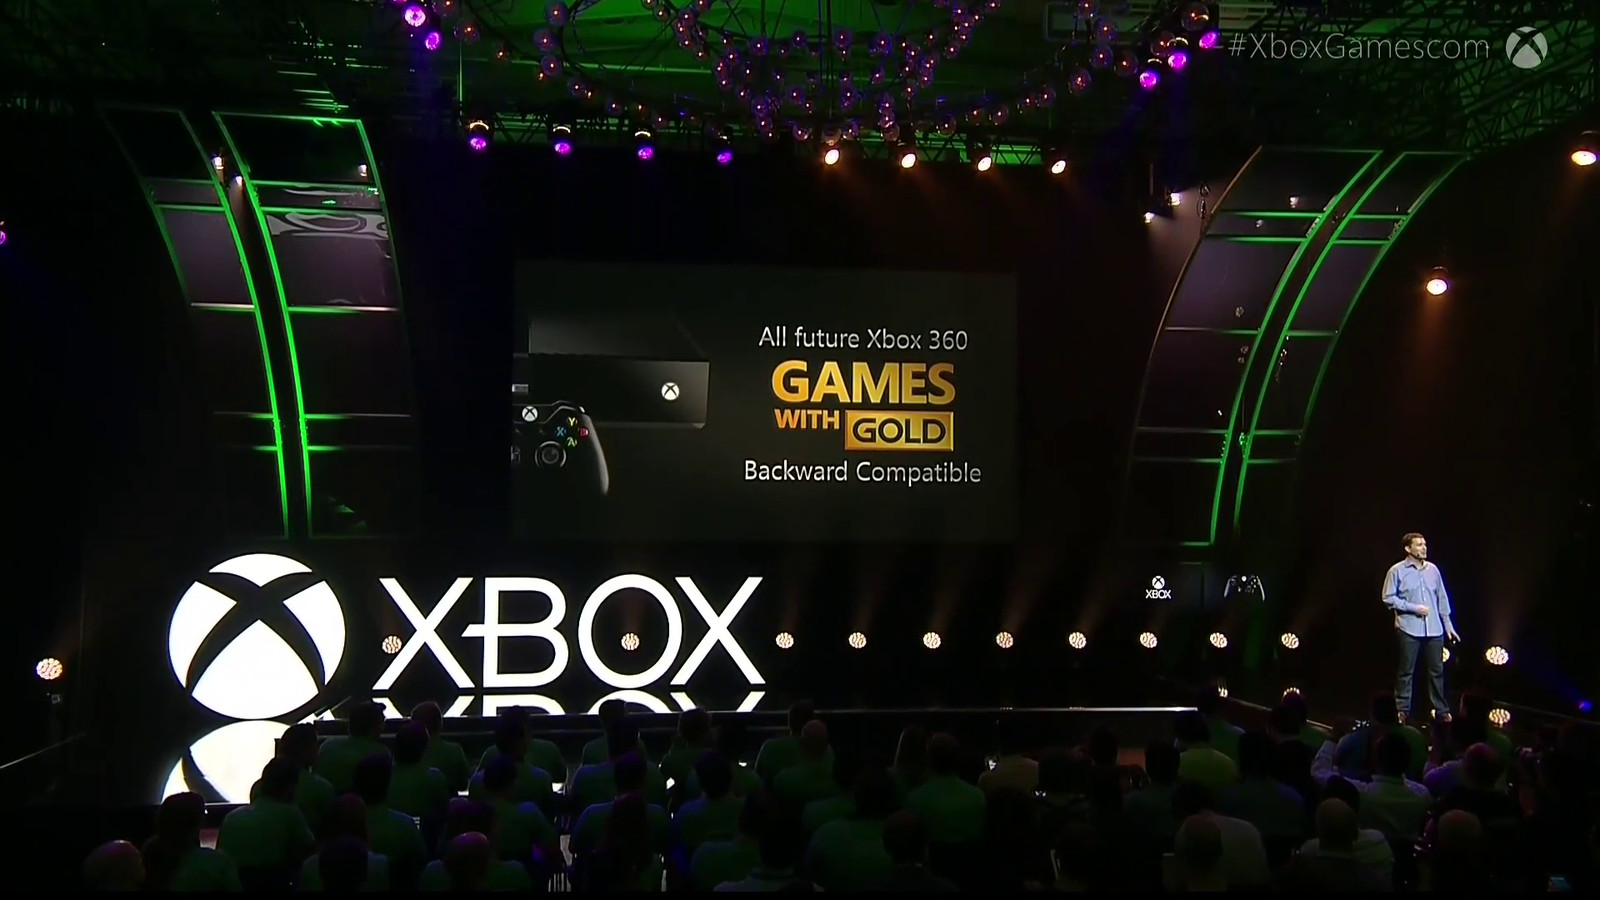 Xbox 360 Games With Gold : All future xbox games with gold freebies will be